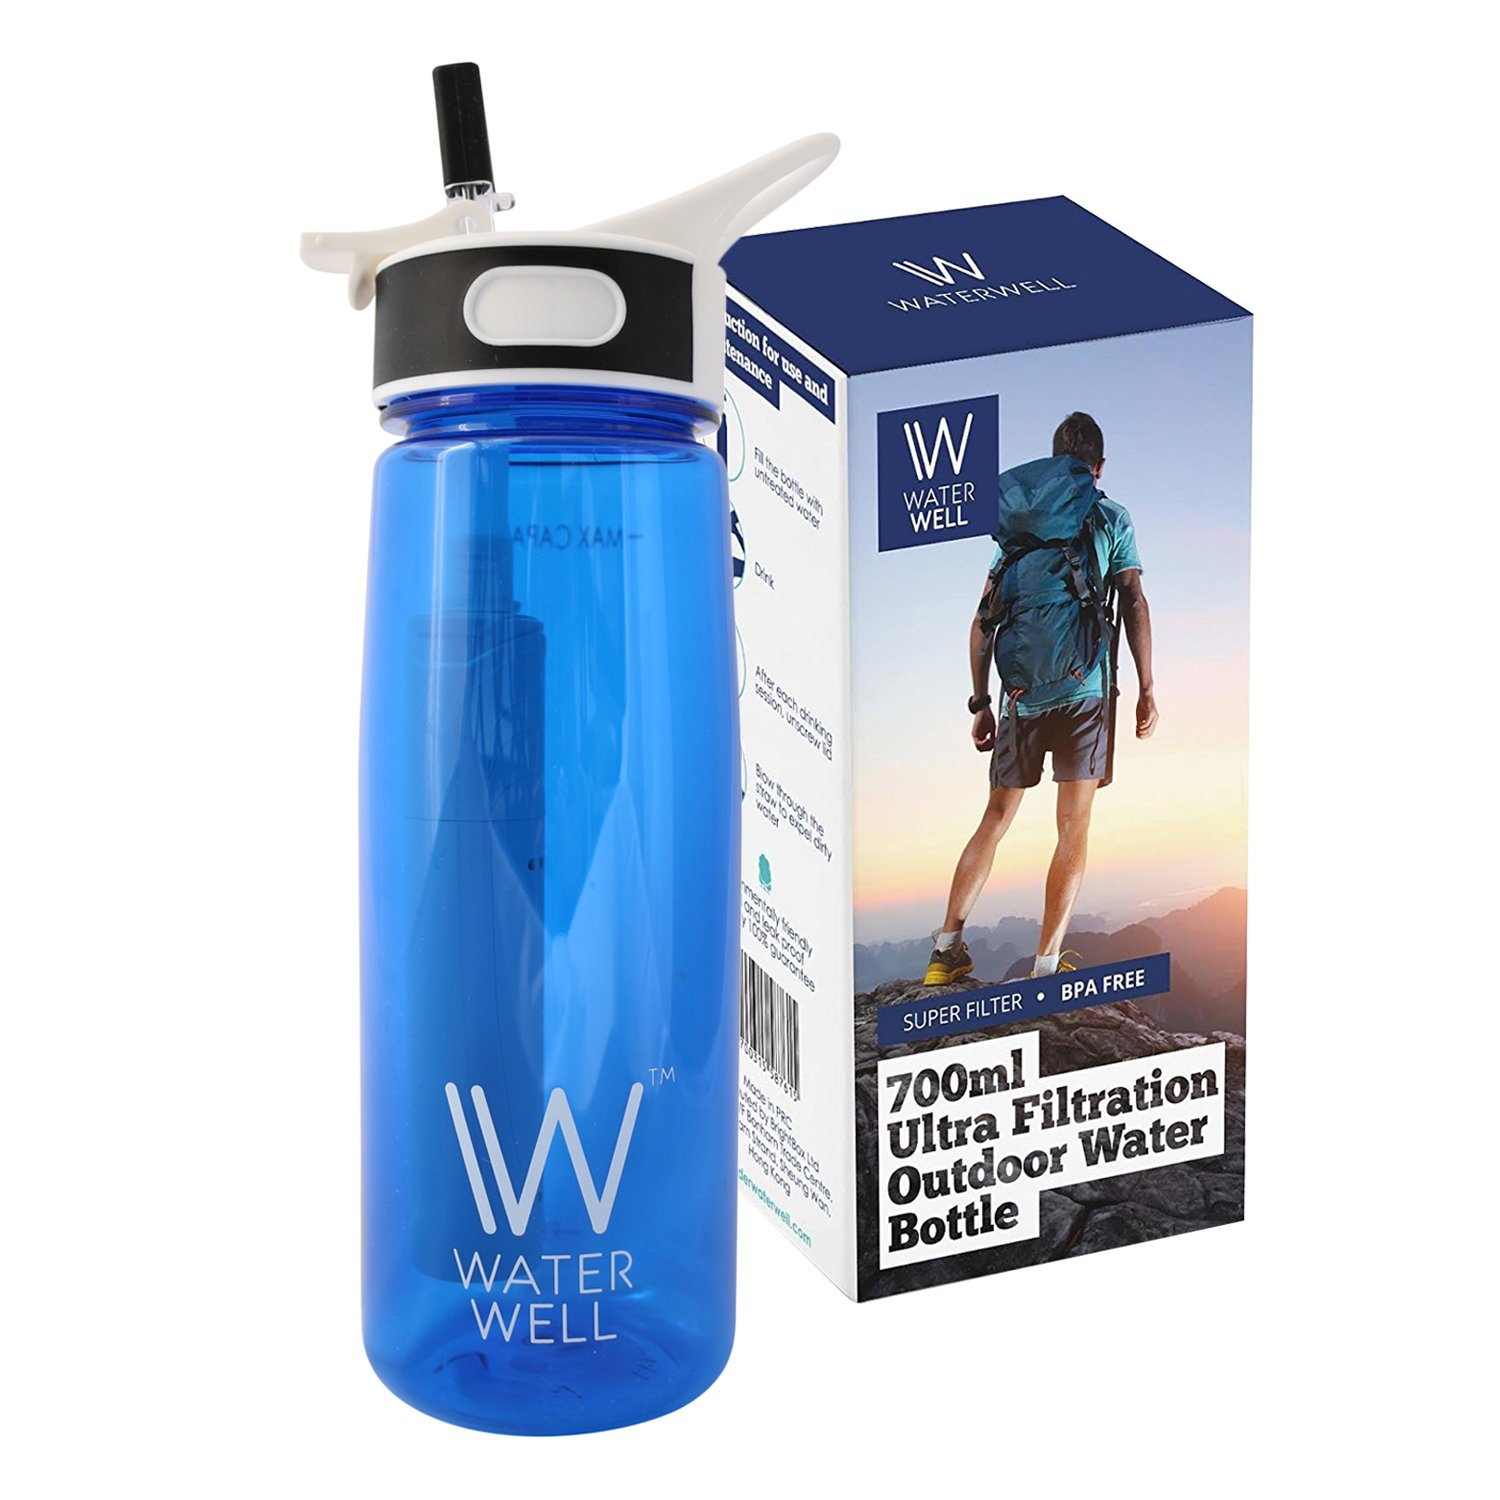 WaterWell™ Travel Ultra 2 Stage Filter Water Bottle - Filters 99.9% of Waterborne Pathogens - 1000 Litre Lifespan // 700ml Capacity Version -- (UPDATE: APRIL 2018 - Product improvements include stronger plastic lever, faster filter flow rate and BPA-free leak-proof reinforced tritan plastic body)